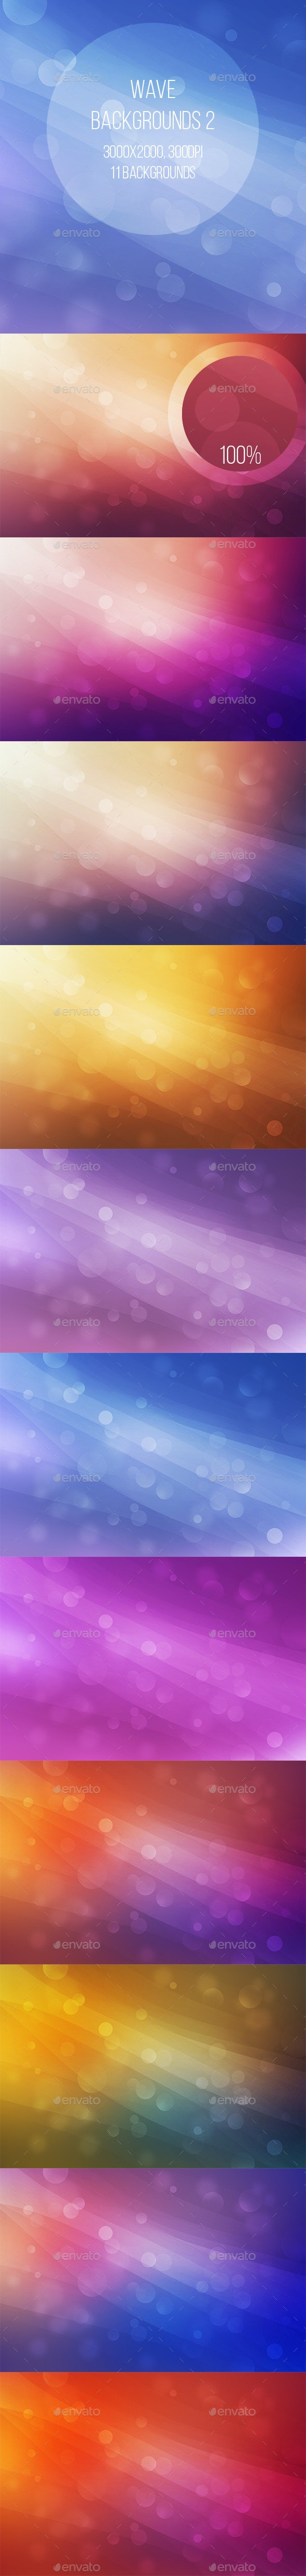 Abstract Wave Backgrounds 2 - Abstract Backgrounds